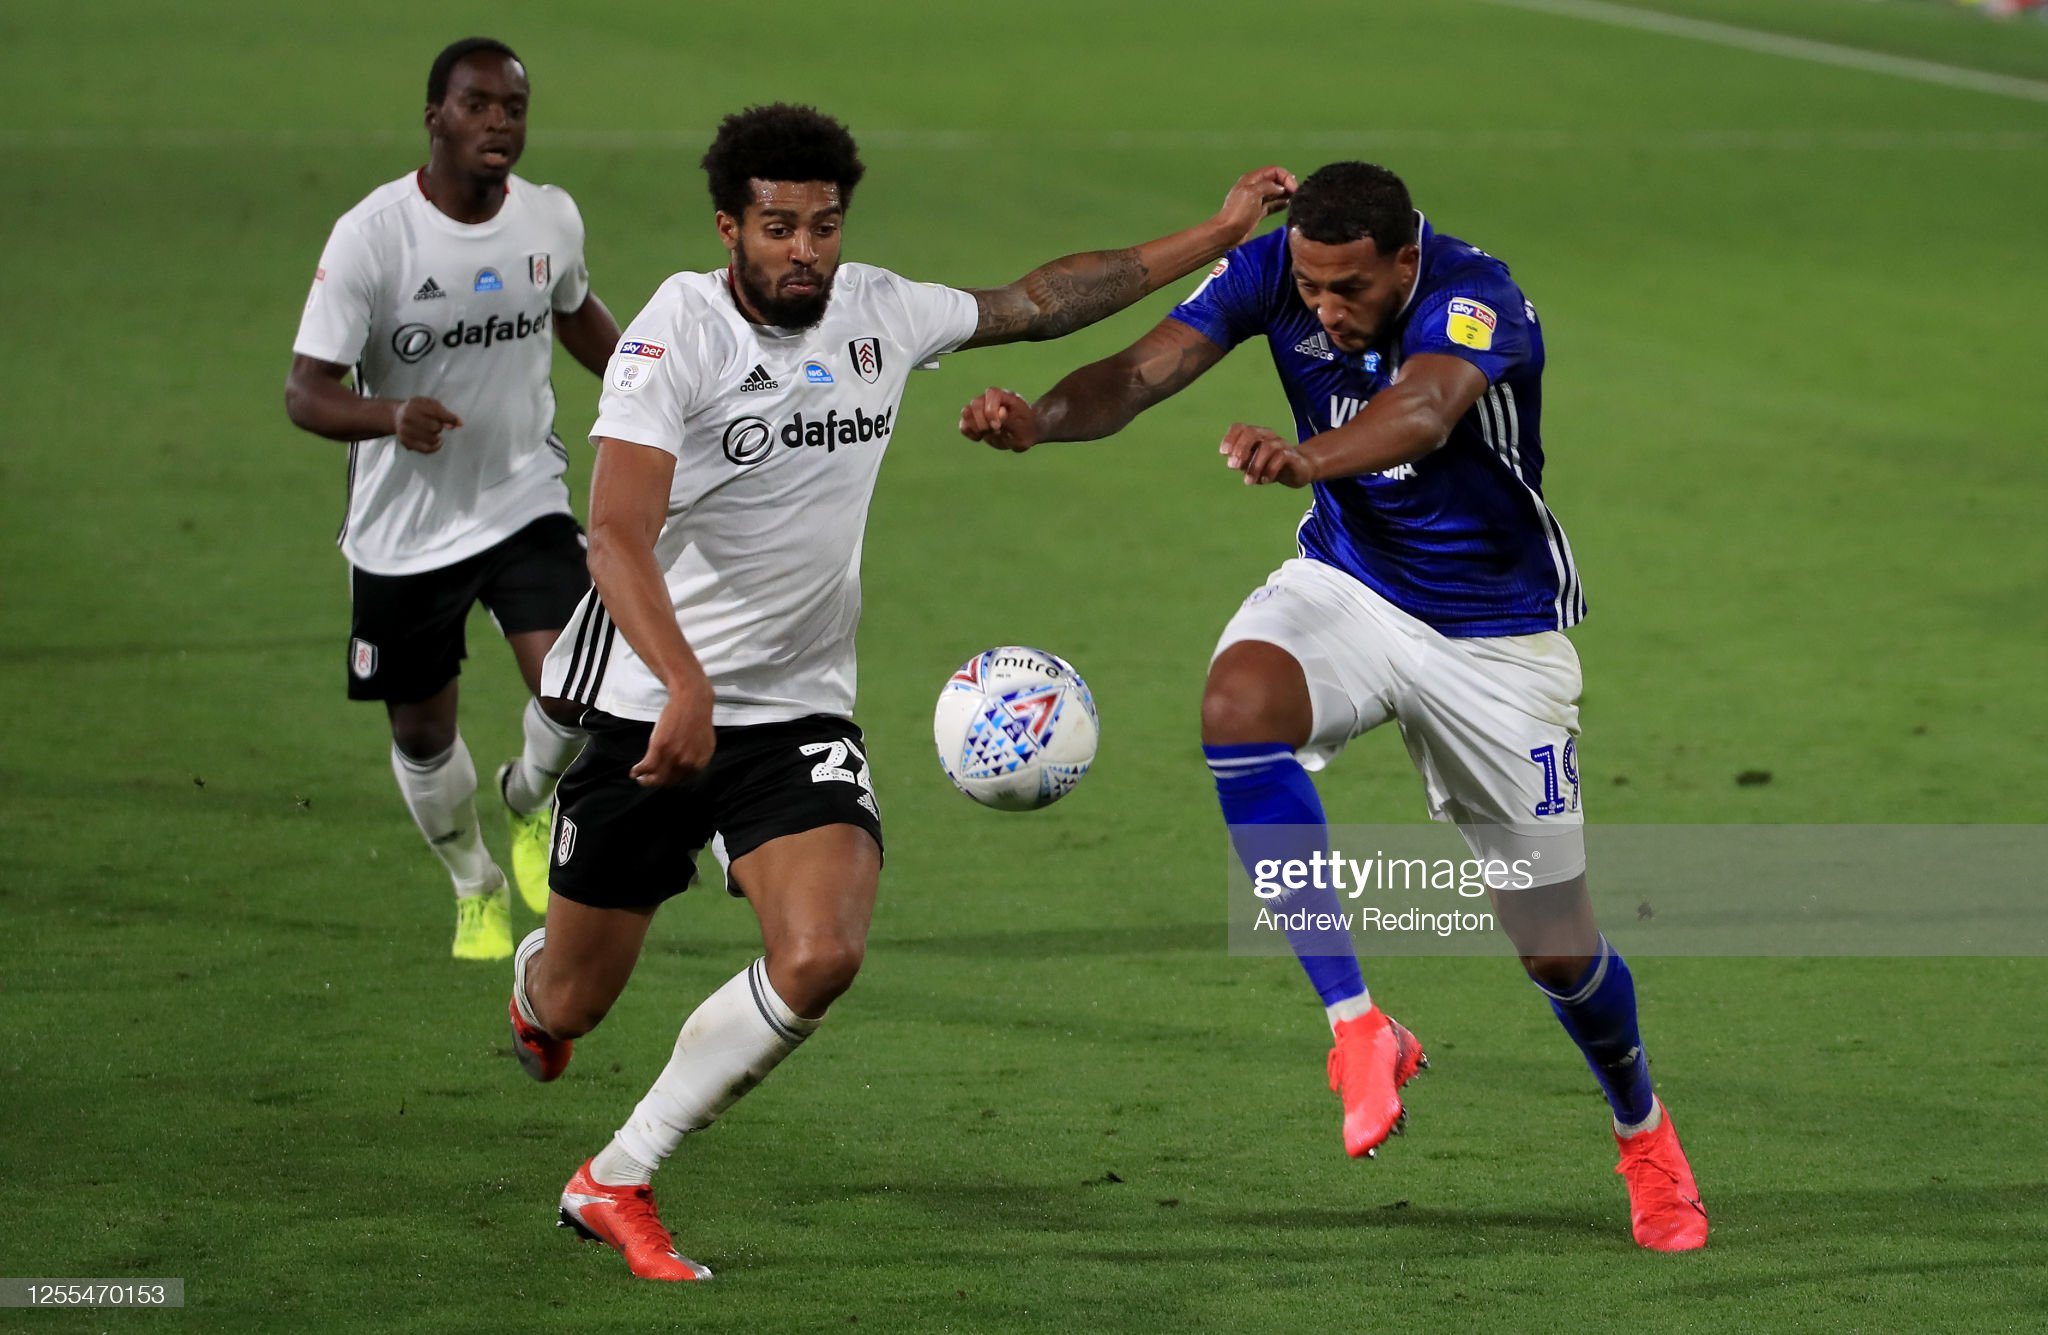 Cardiff vs Fulham Preview, prediction and odds